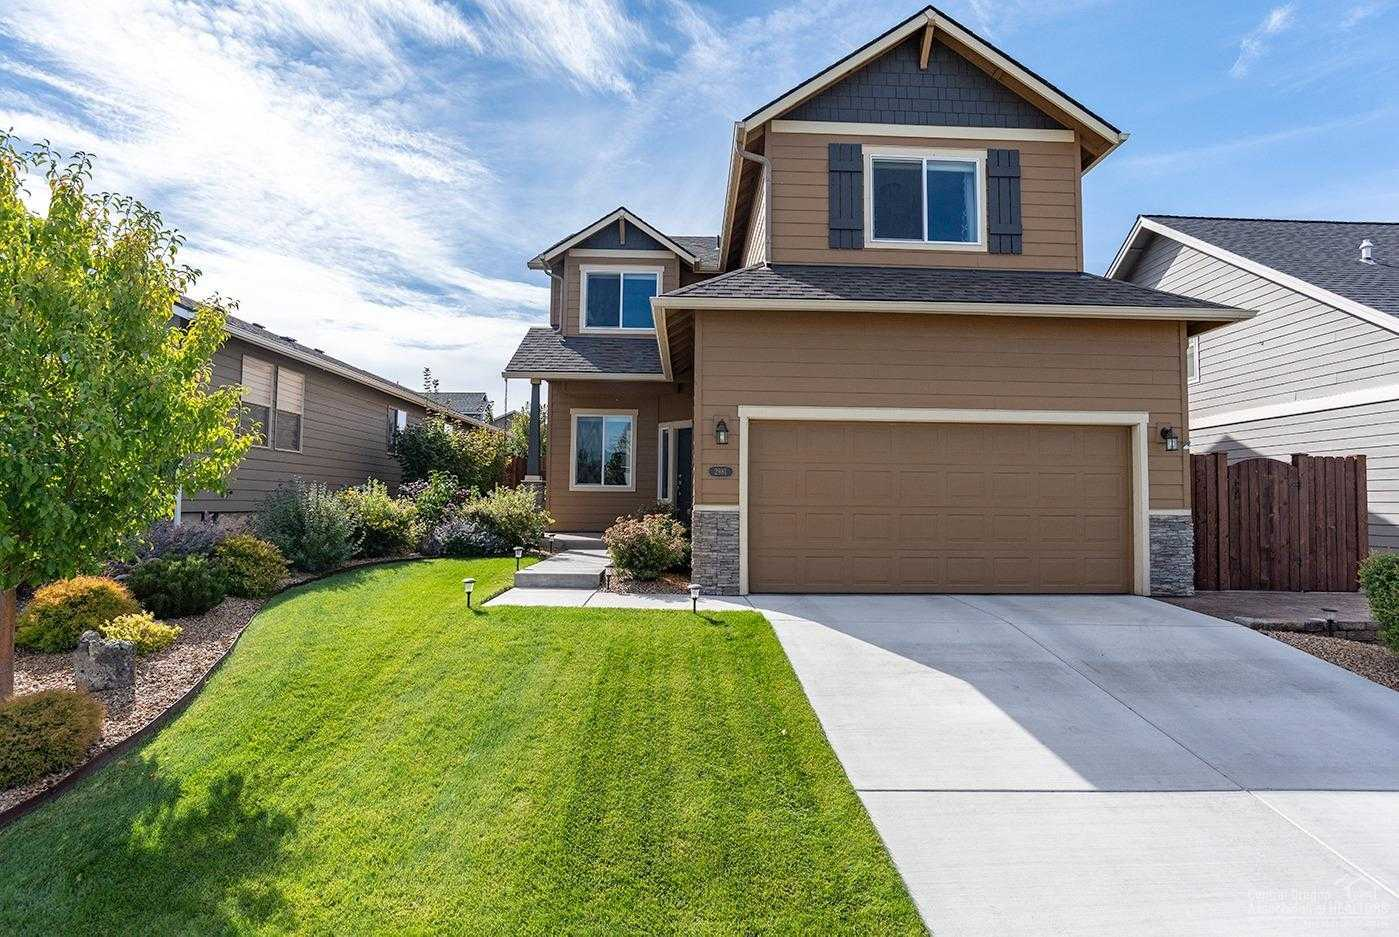 $429,900 - 3Br/3Ba -  for Sale in Bend